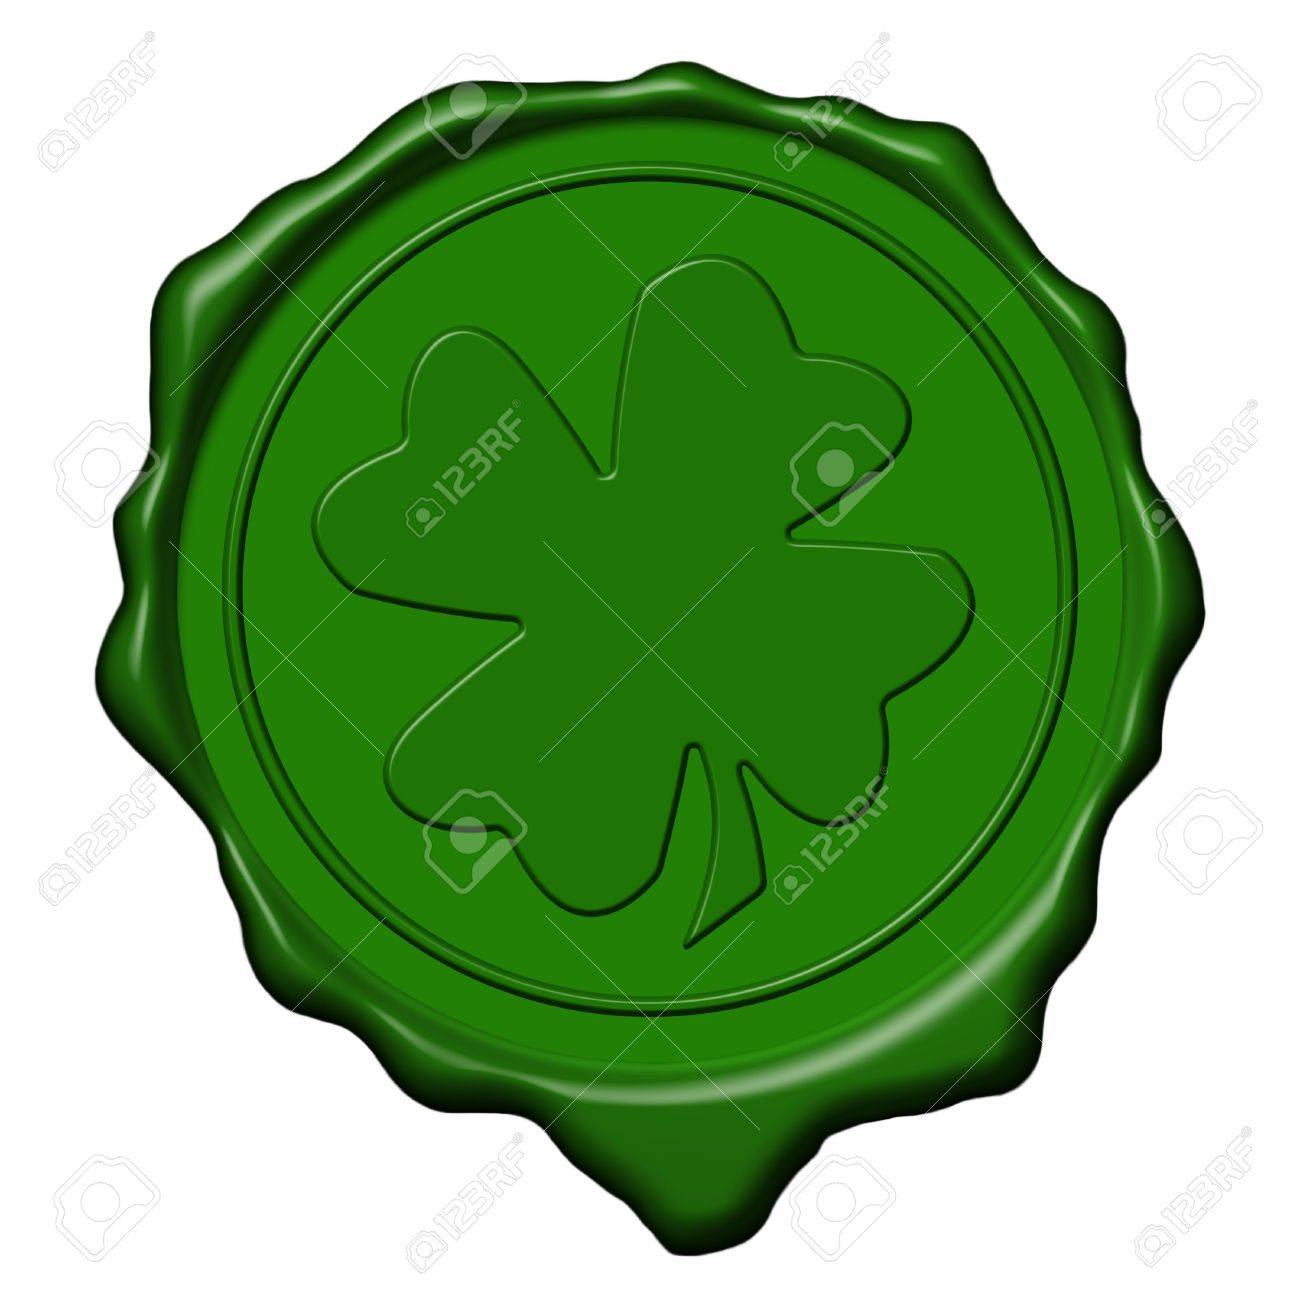 Green saint patrick's shamrock wax seal used to sign and close letters Stock Photo - 2806398